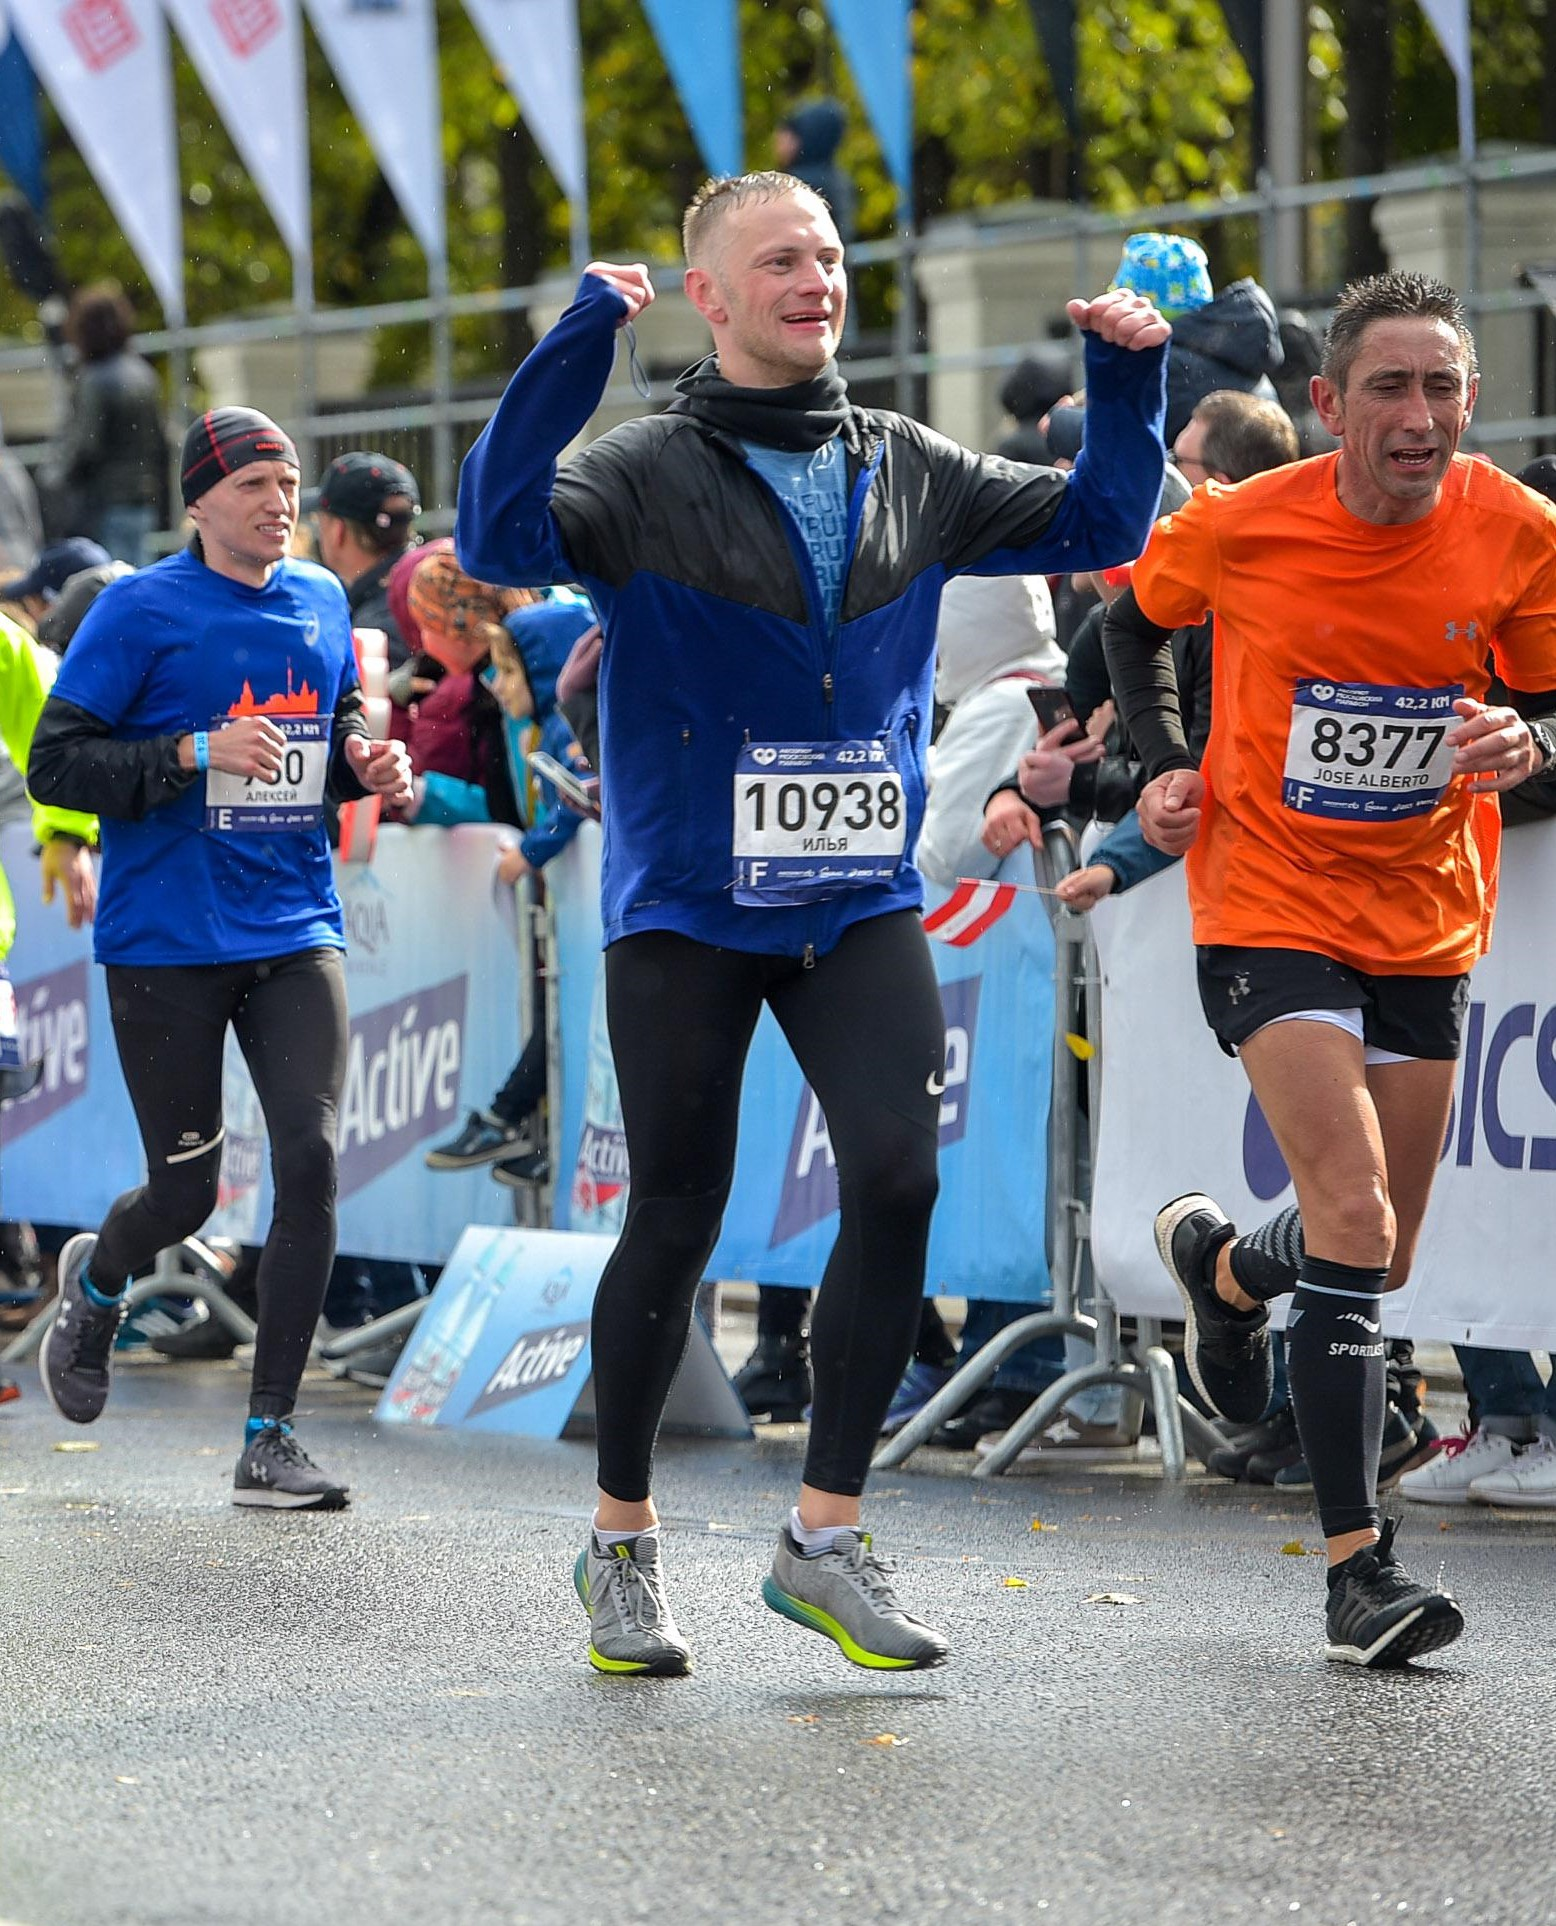 Ilya Trofimov, Consulting Group TEAM: How to finish successfully in the Largest Russian Marathon